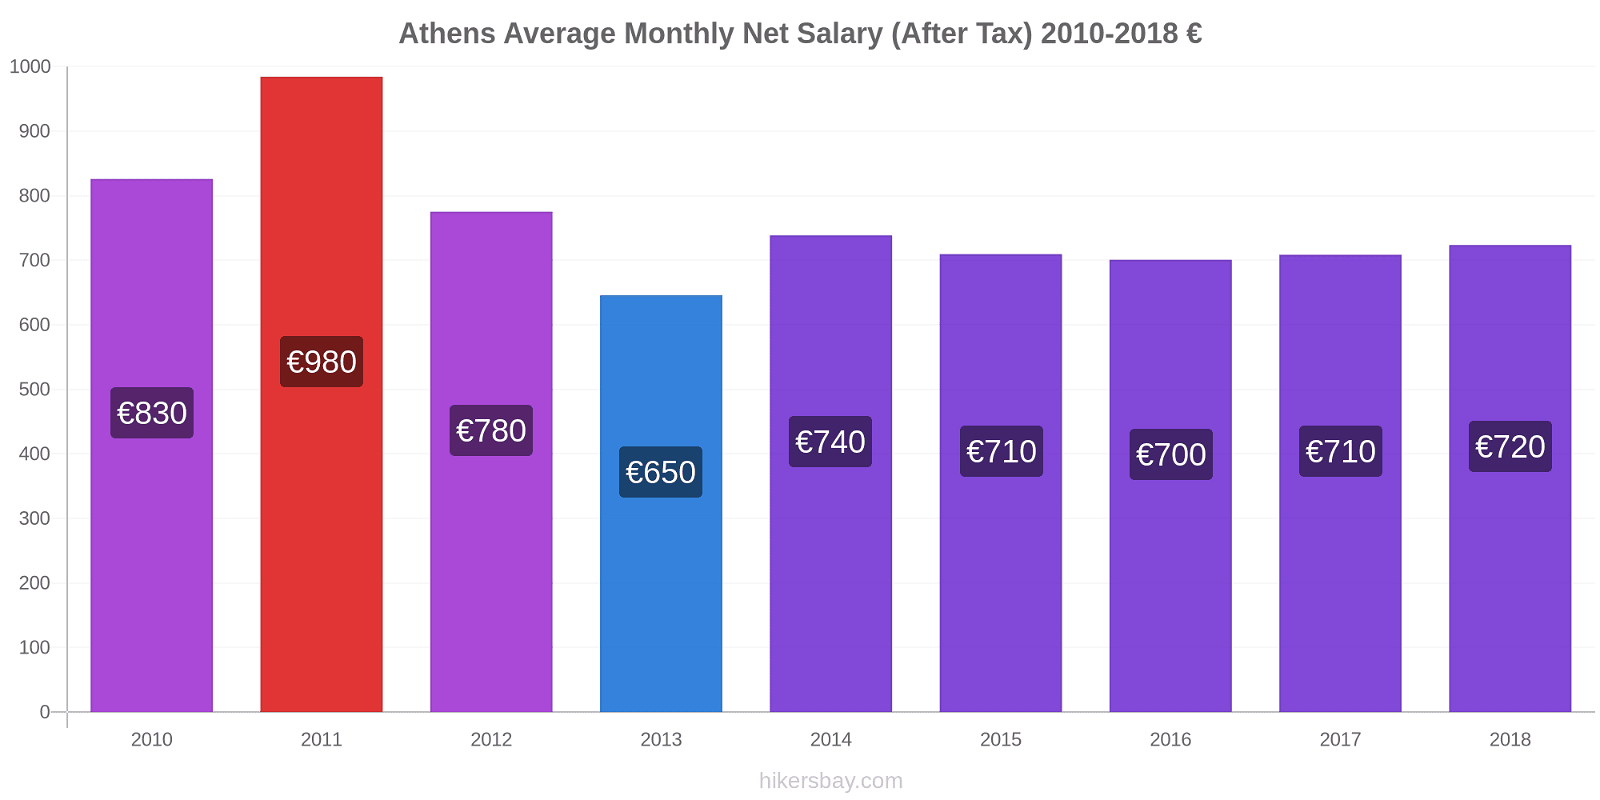 Athens price changes Average Monthly Net Salary (After Tax) hikersbay.com